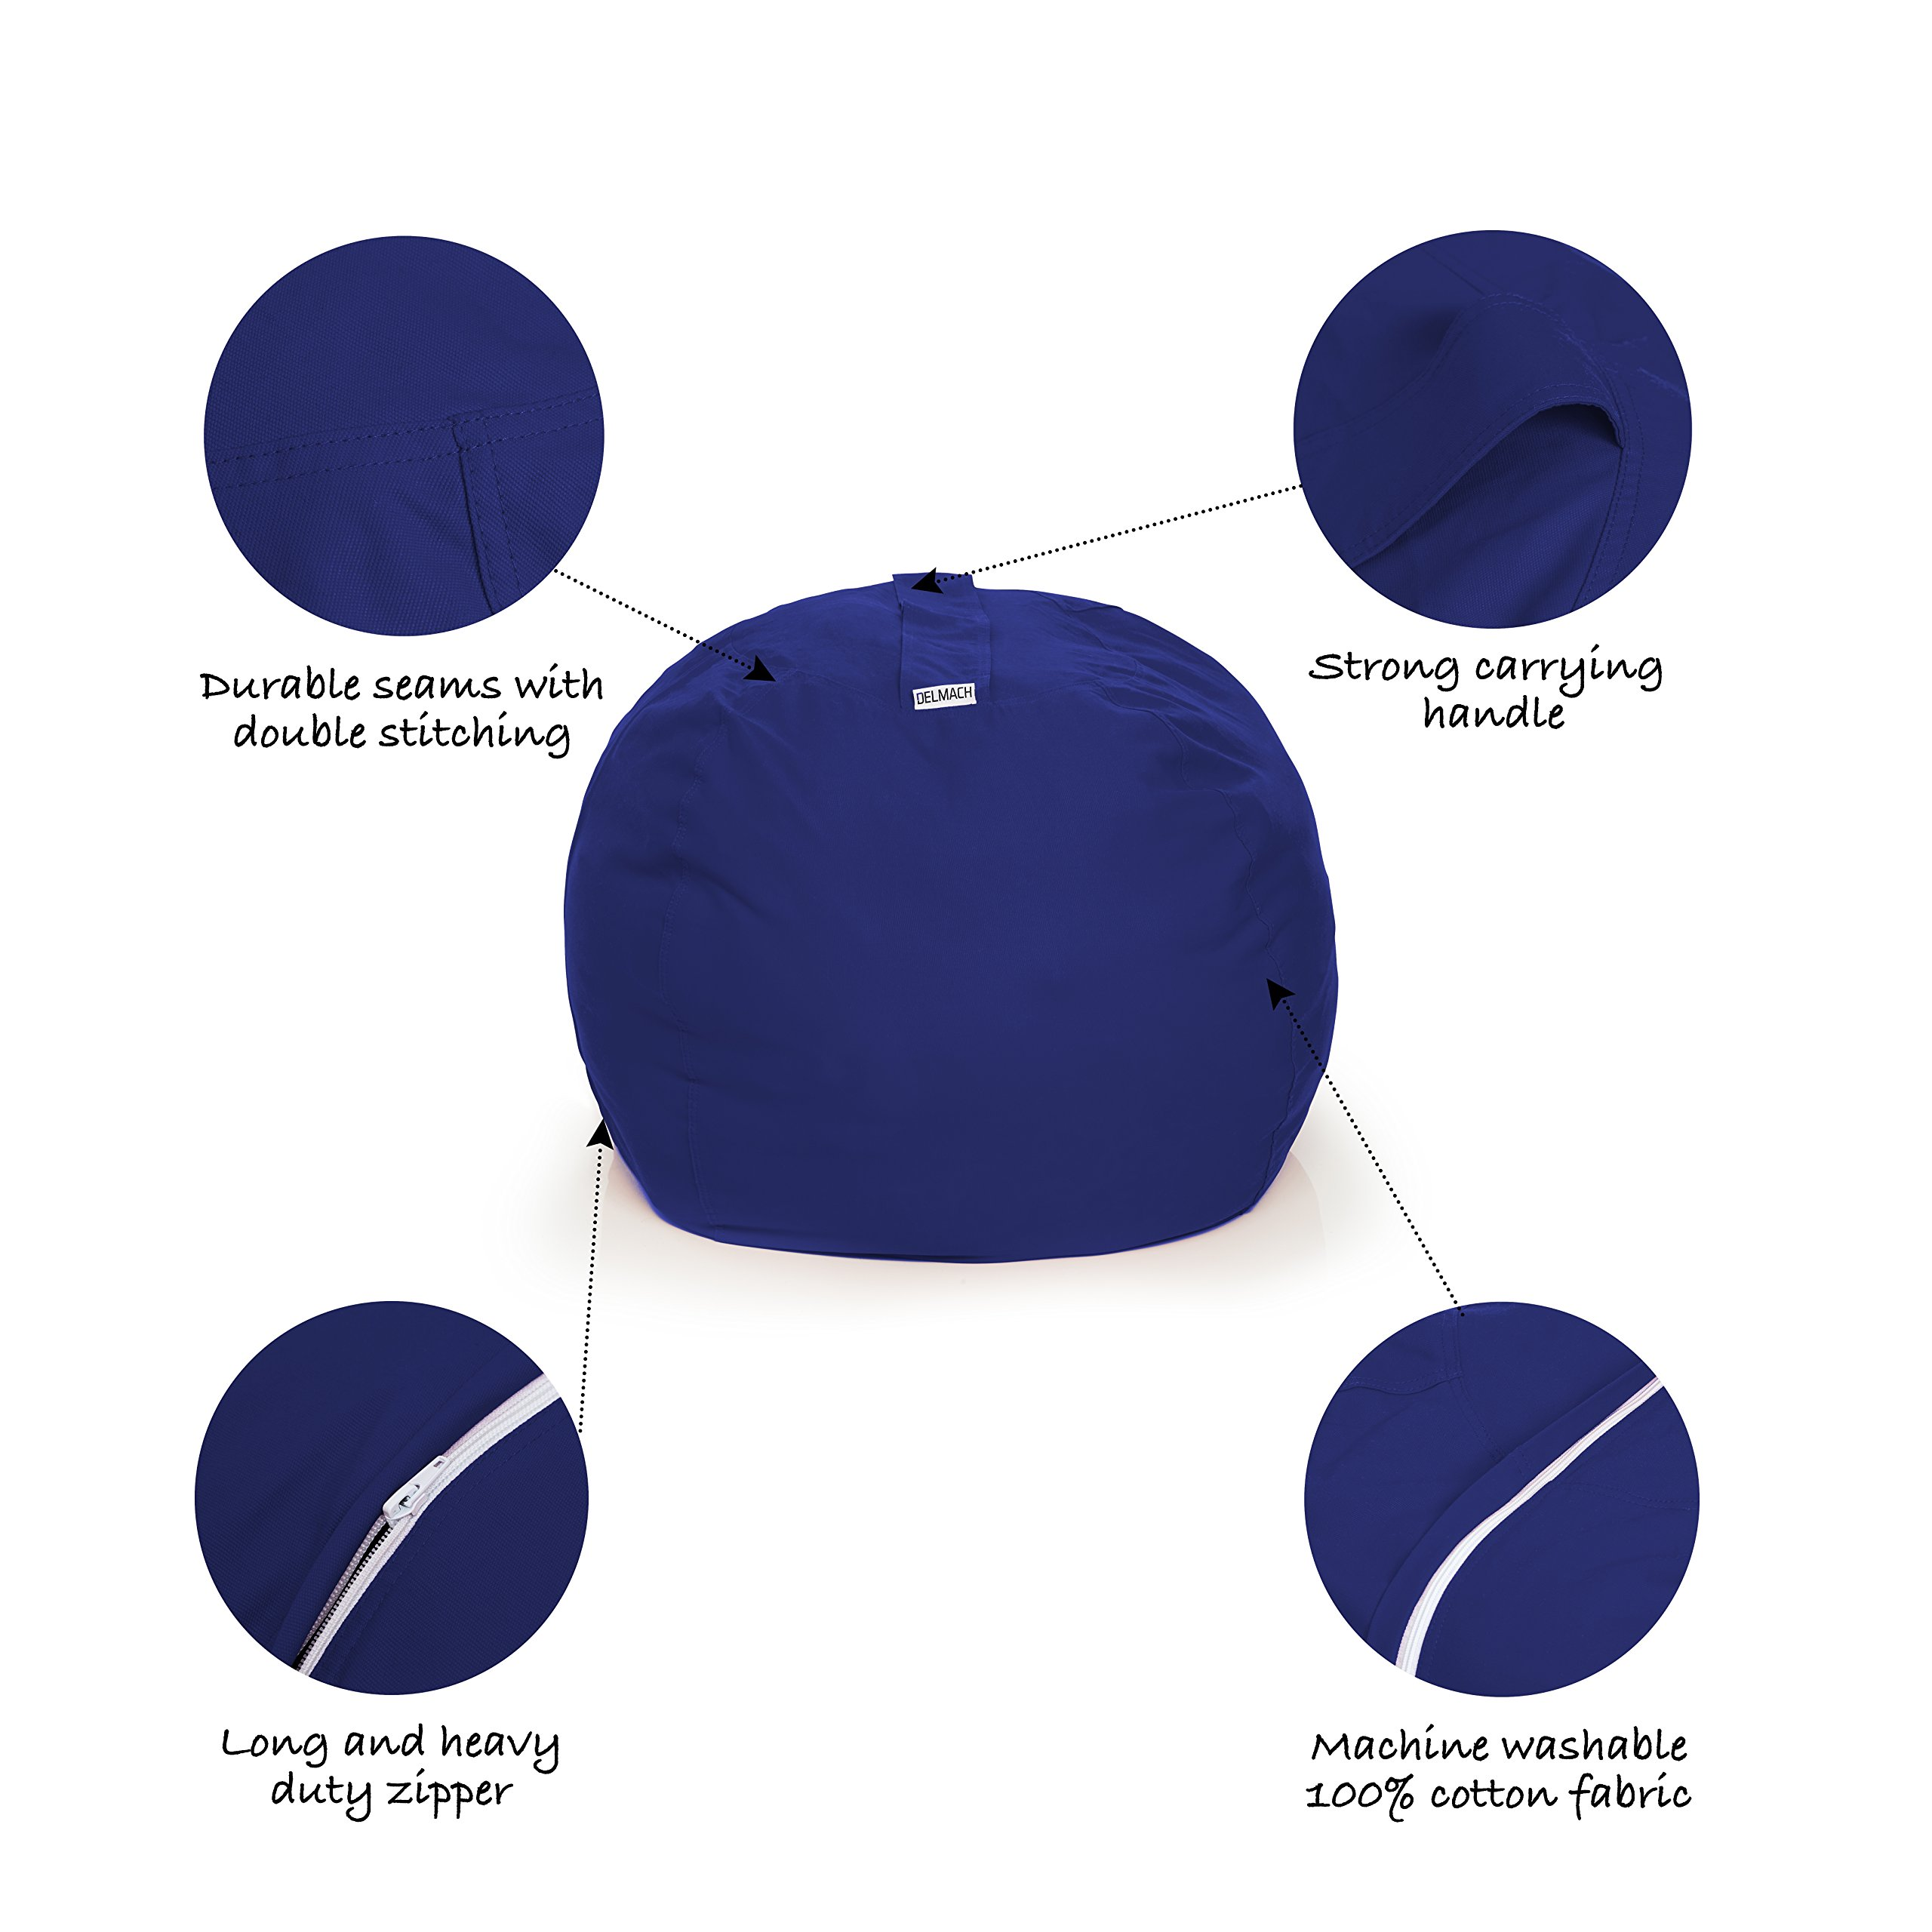 Delmach Stuffed Animal Storage Bean Bag Chair | 38'' Width Extra Large | Premium Double Stitched Cotton Canvas | Kids Blue Bean Bag Cover by Delmach (Image #5)